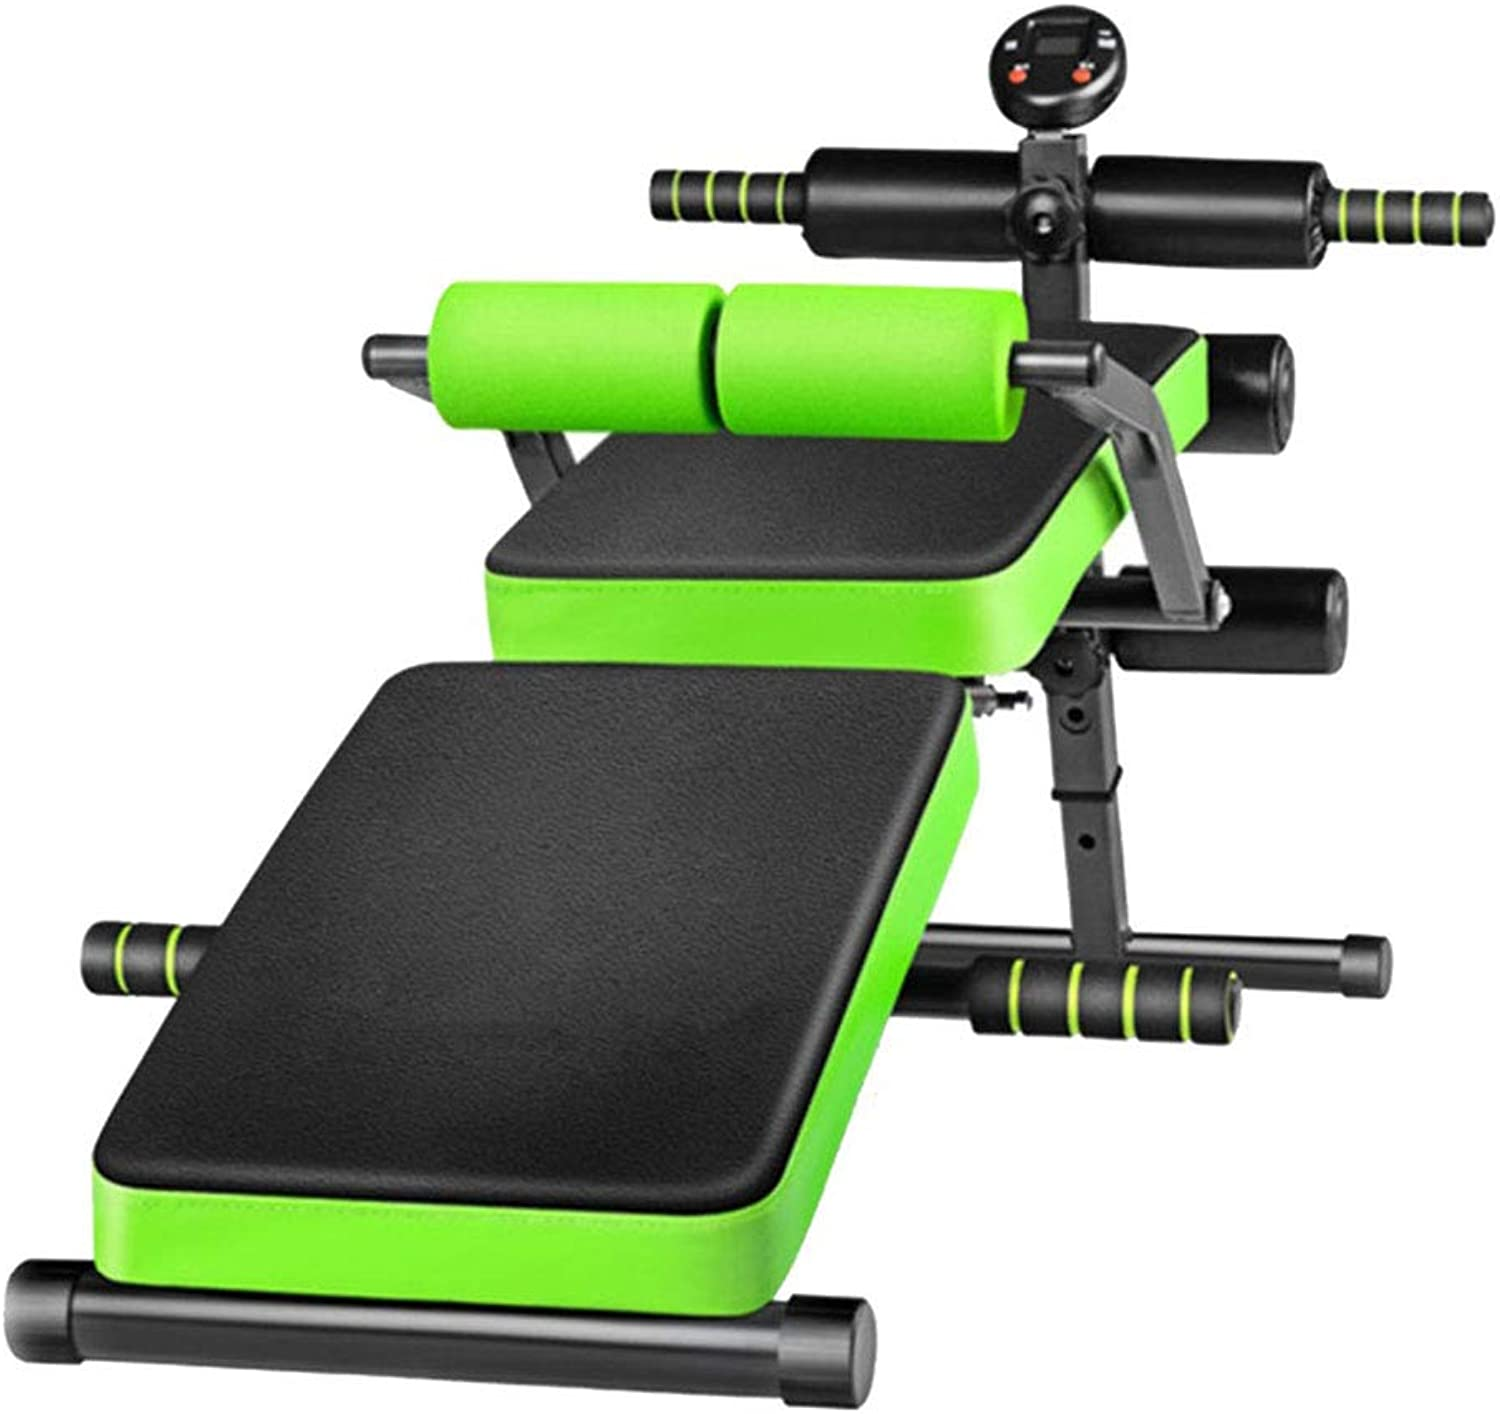 Family Abdominal Trainer MultiFunctional Fitness  Safety Fitness  Suitable for Beginners, Obese and Fitness People  Led Display